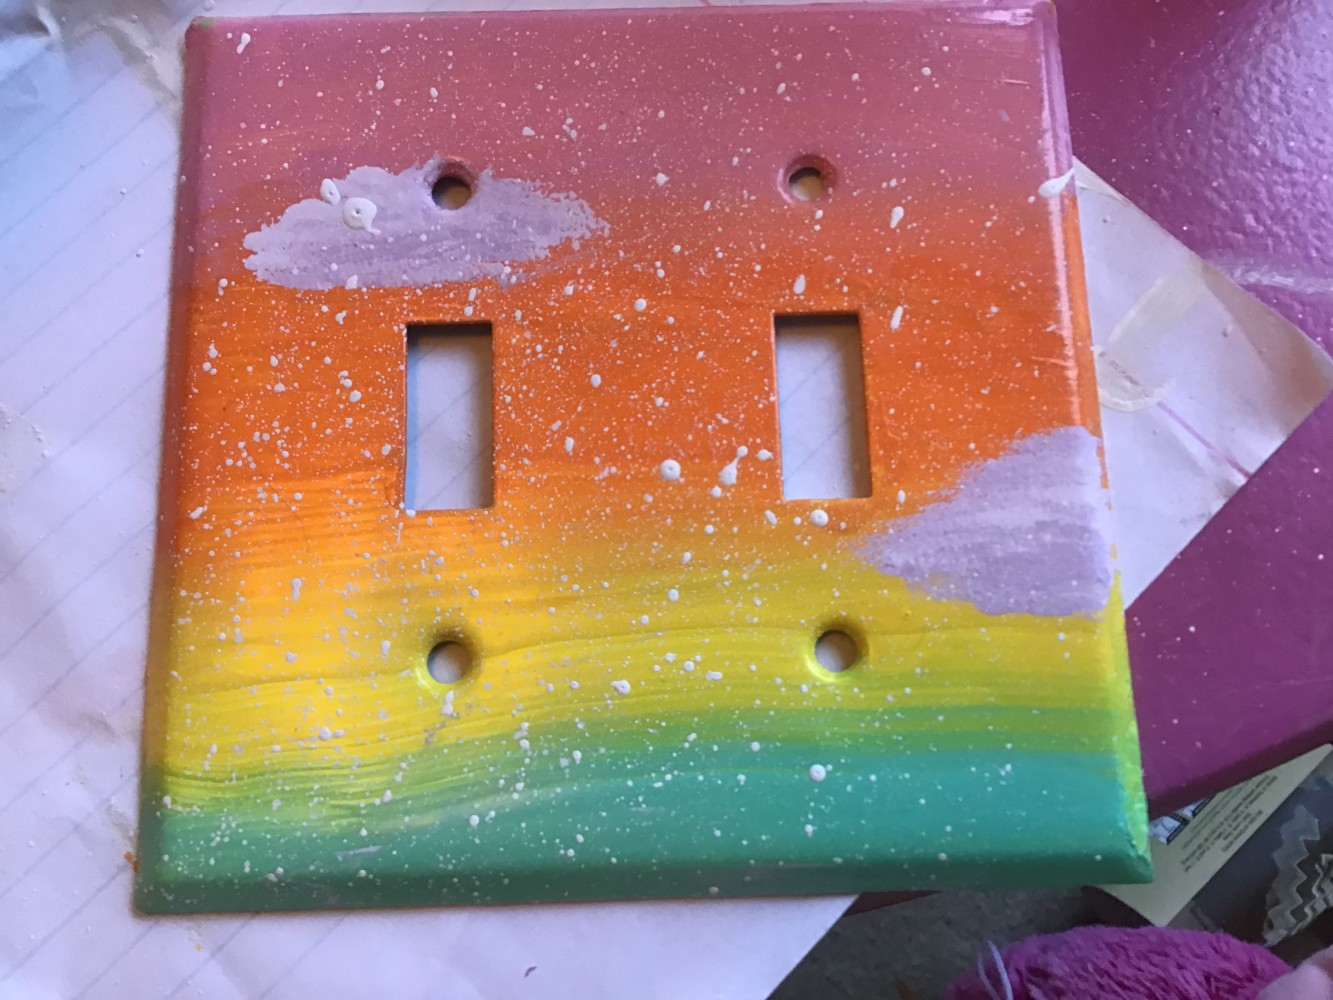 Pixilart Painting Light Switch Plate Thing Uploaded By